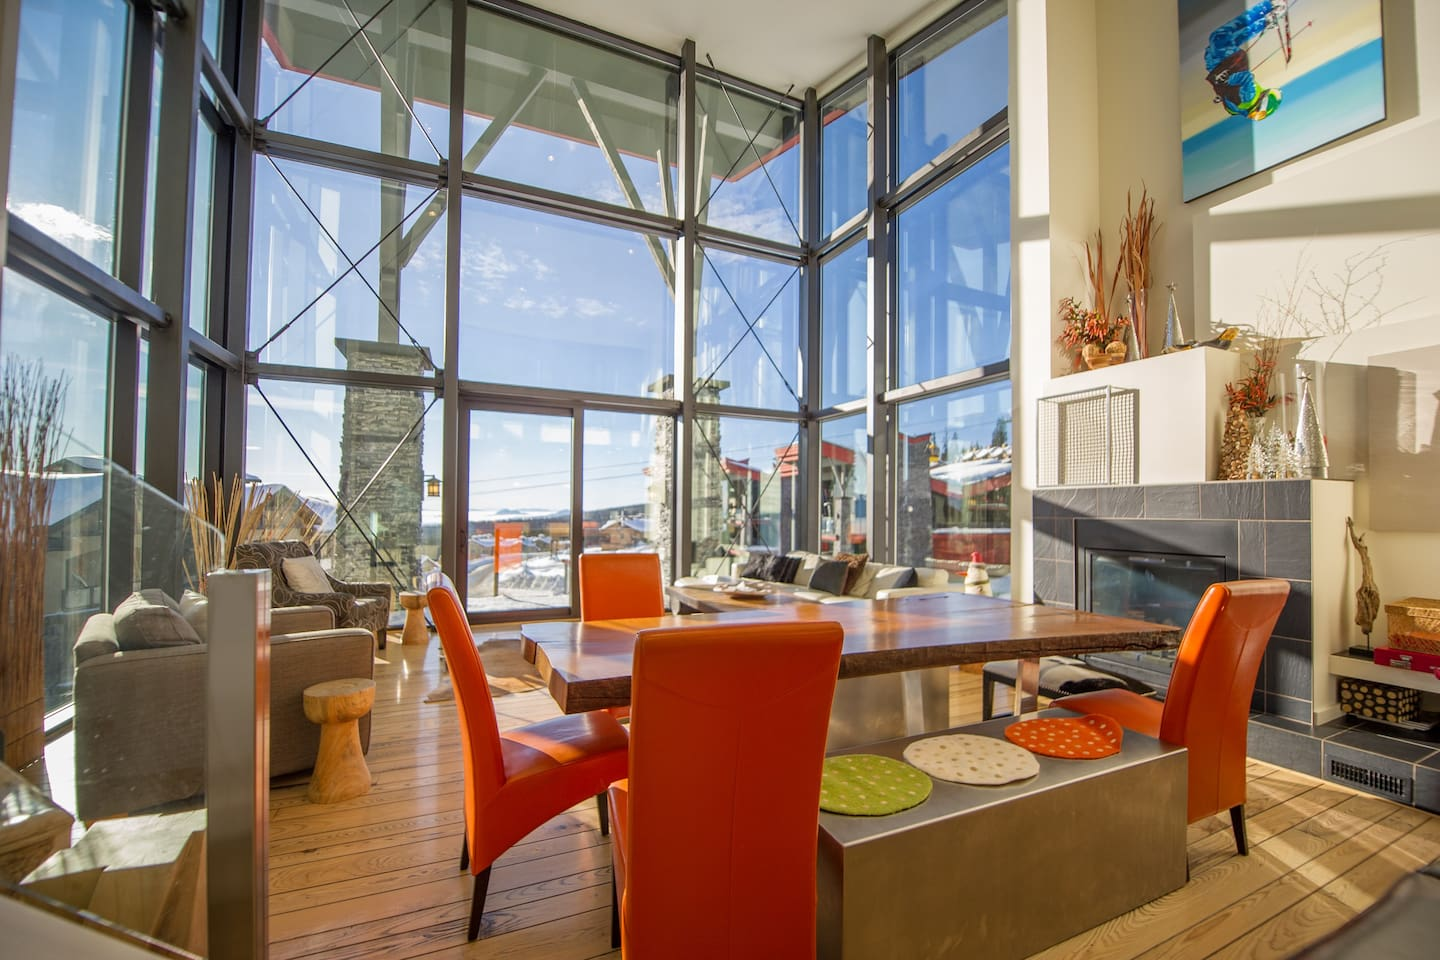 The great room boasts 26' high ceilings in a glass enclosure with sweeping views of the mountain and valley below.